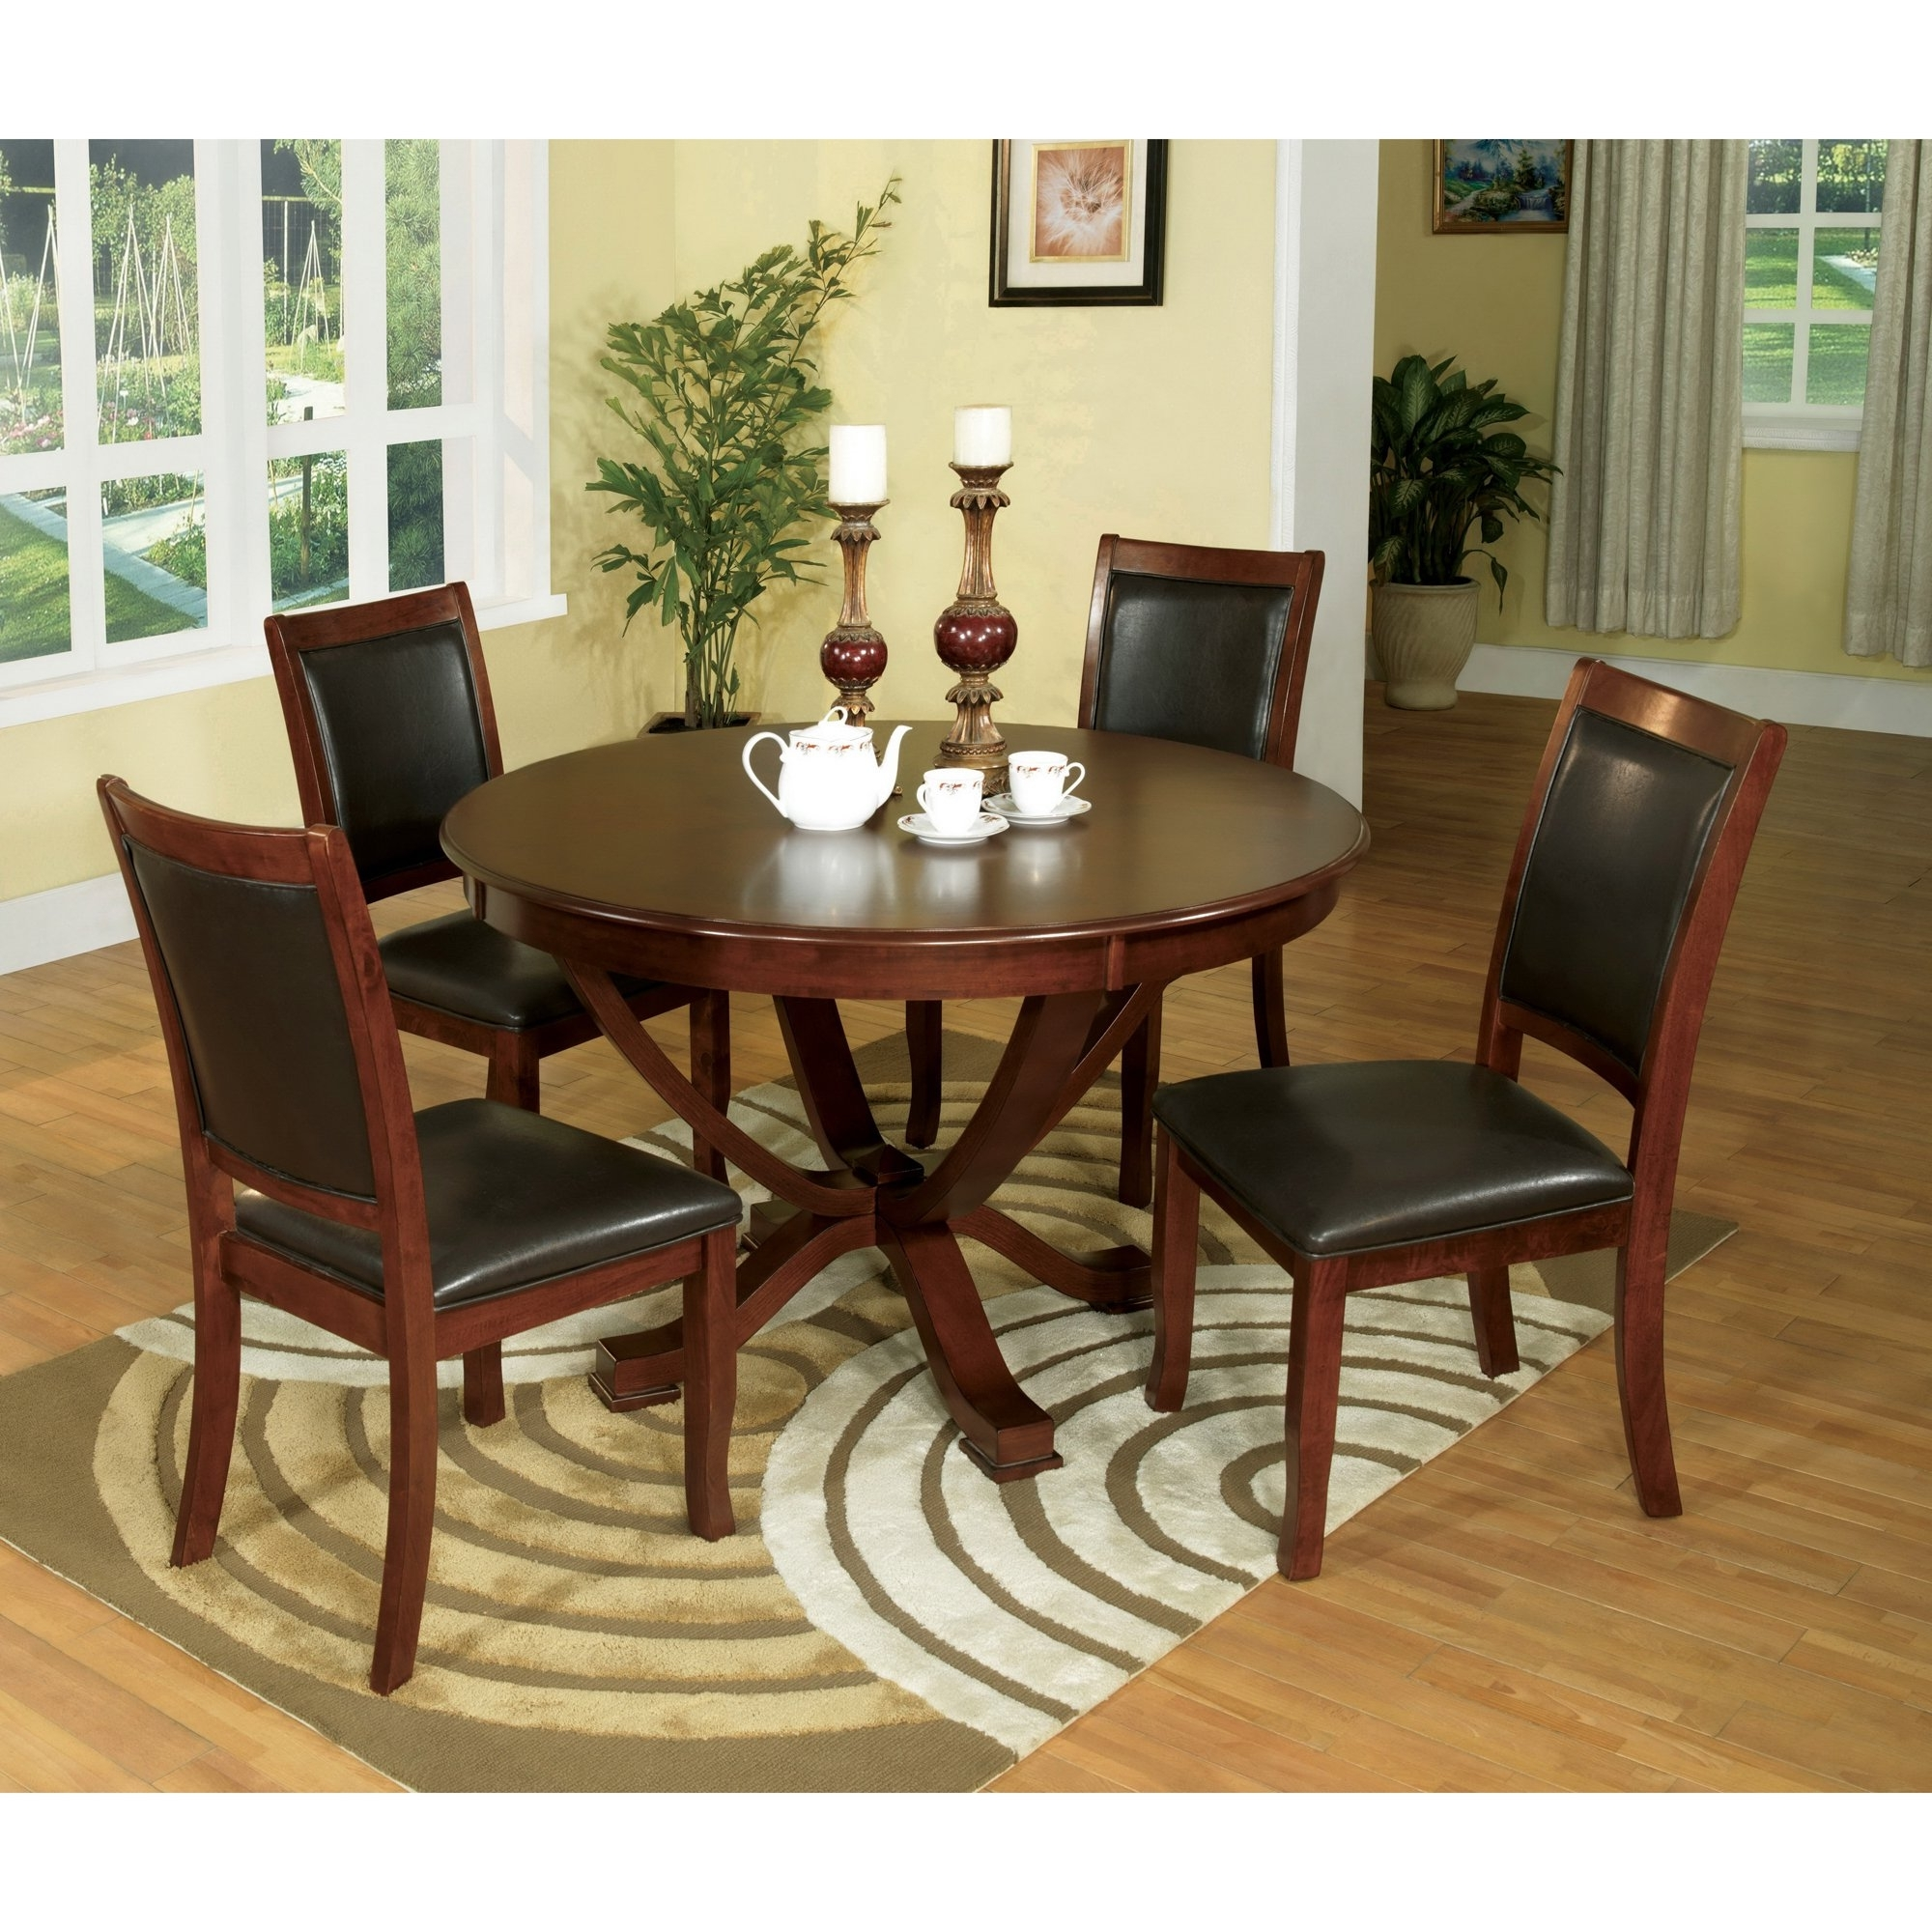 Kirsten 5 Piece Dining Sets Intended For Current Shop Furniture Of America Kristen 5 Piece Brown Cherry Dining Set (View 14 of 25)